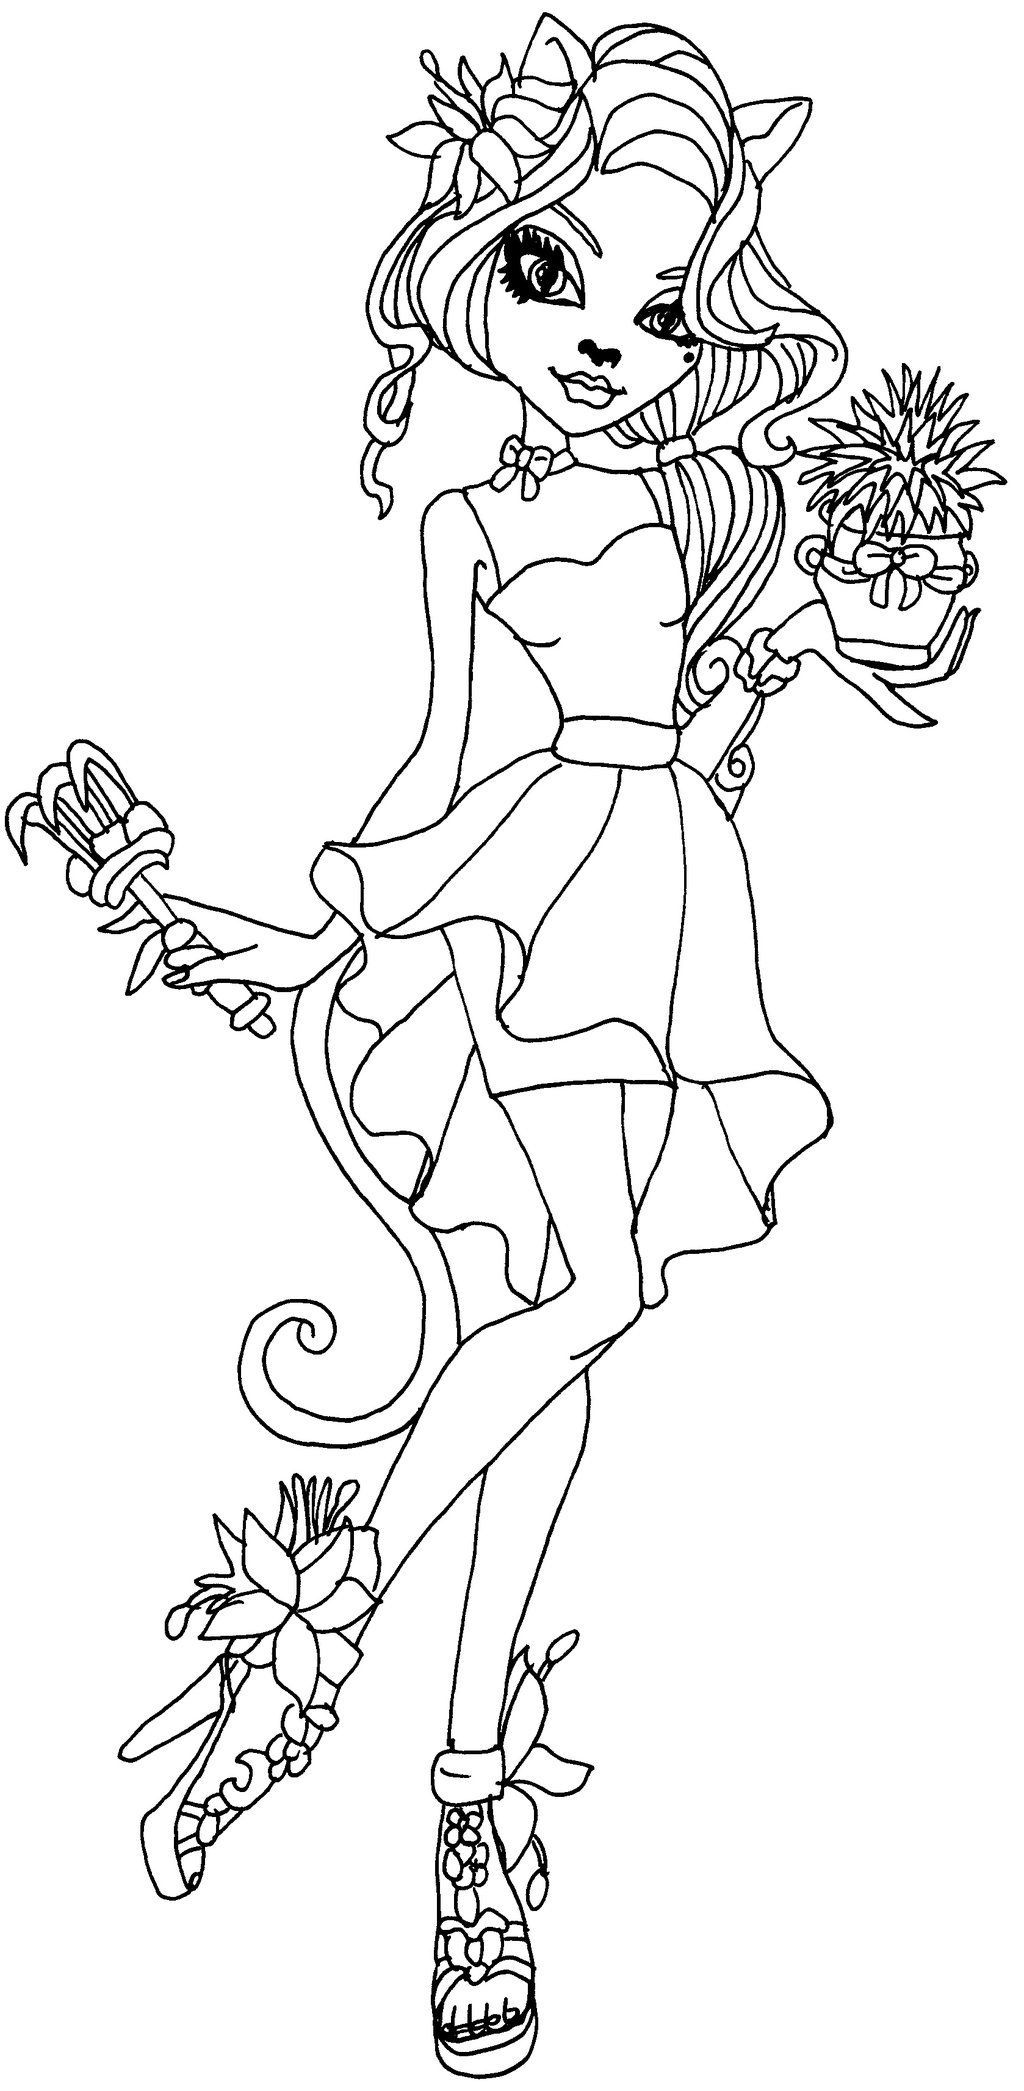 Free Monster High Coloring Pages For Kids Free Coloring Sheets Monster Truck Coloring Pages Monster Coloring Pages Cute Coloring Pages